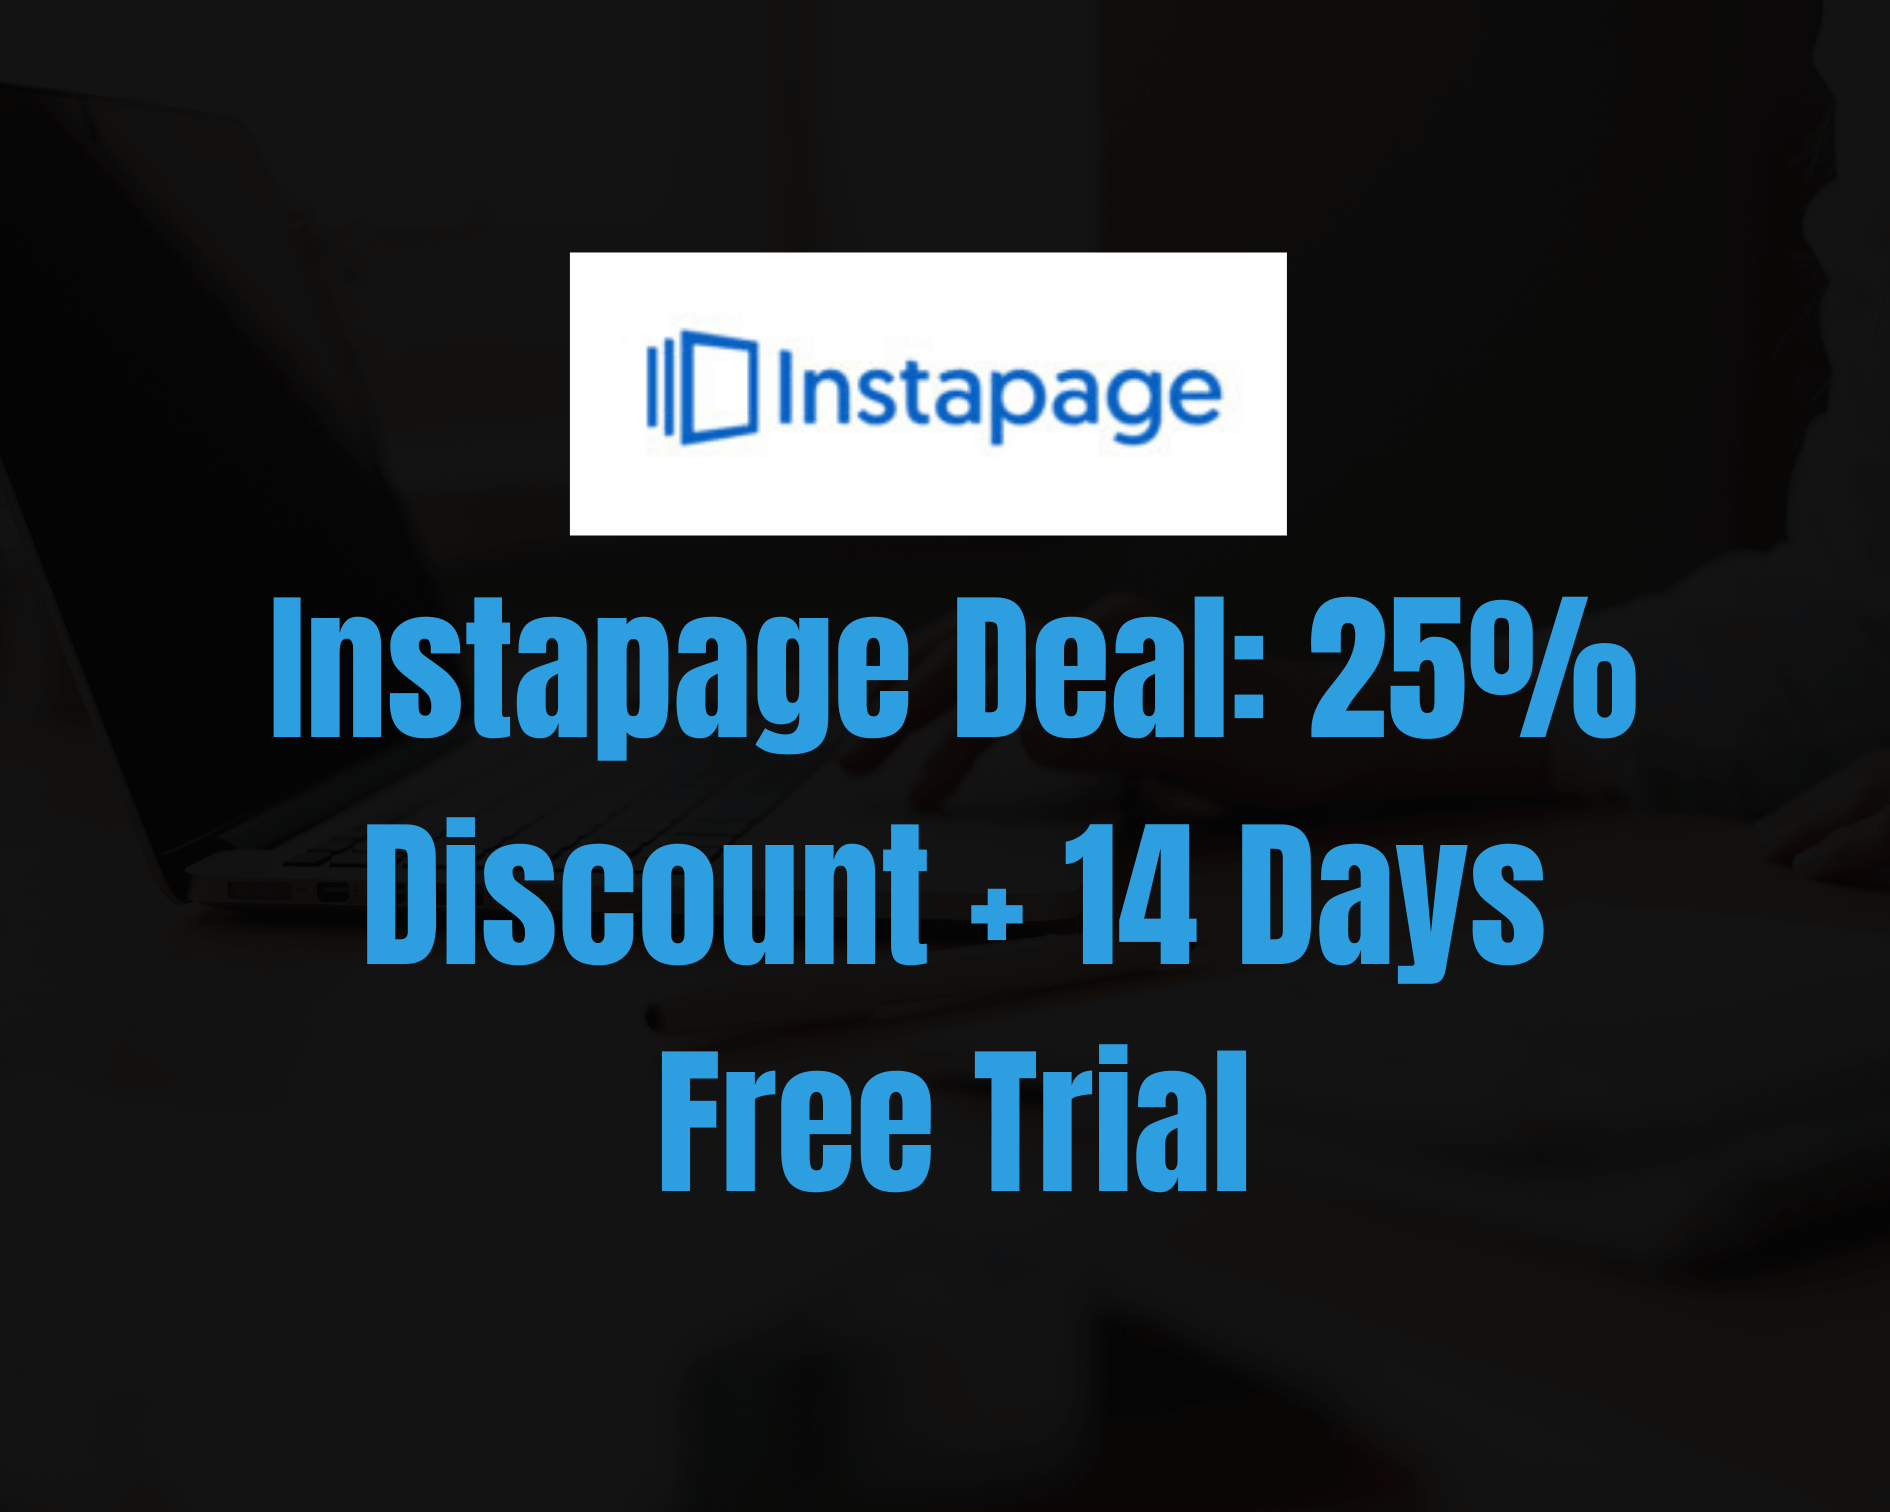 Instapage Coupon Code: Best Deal 25% OFF + 14 Days Free Trial